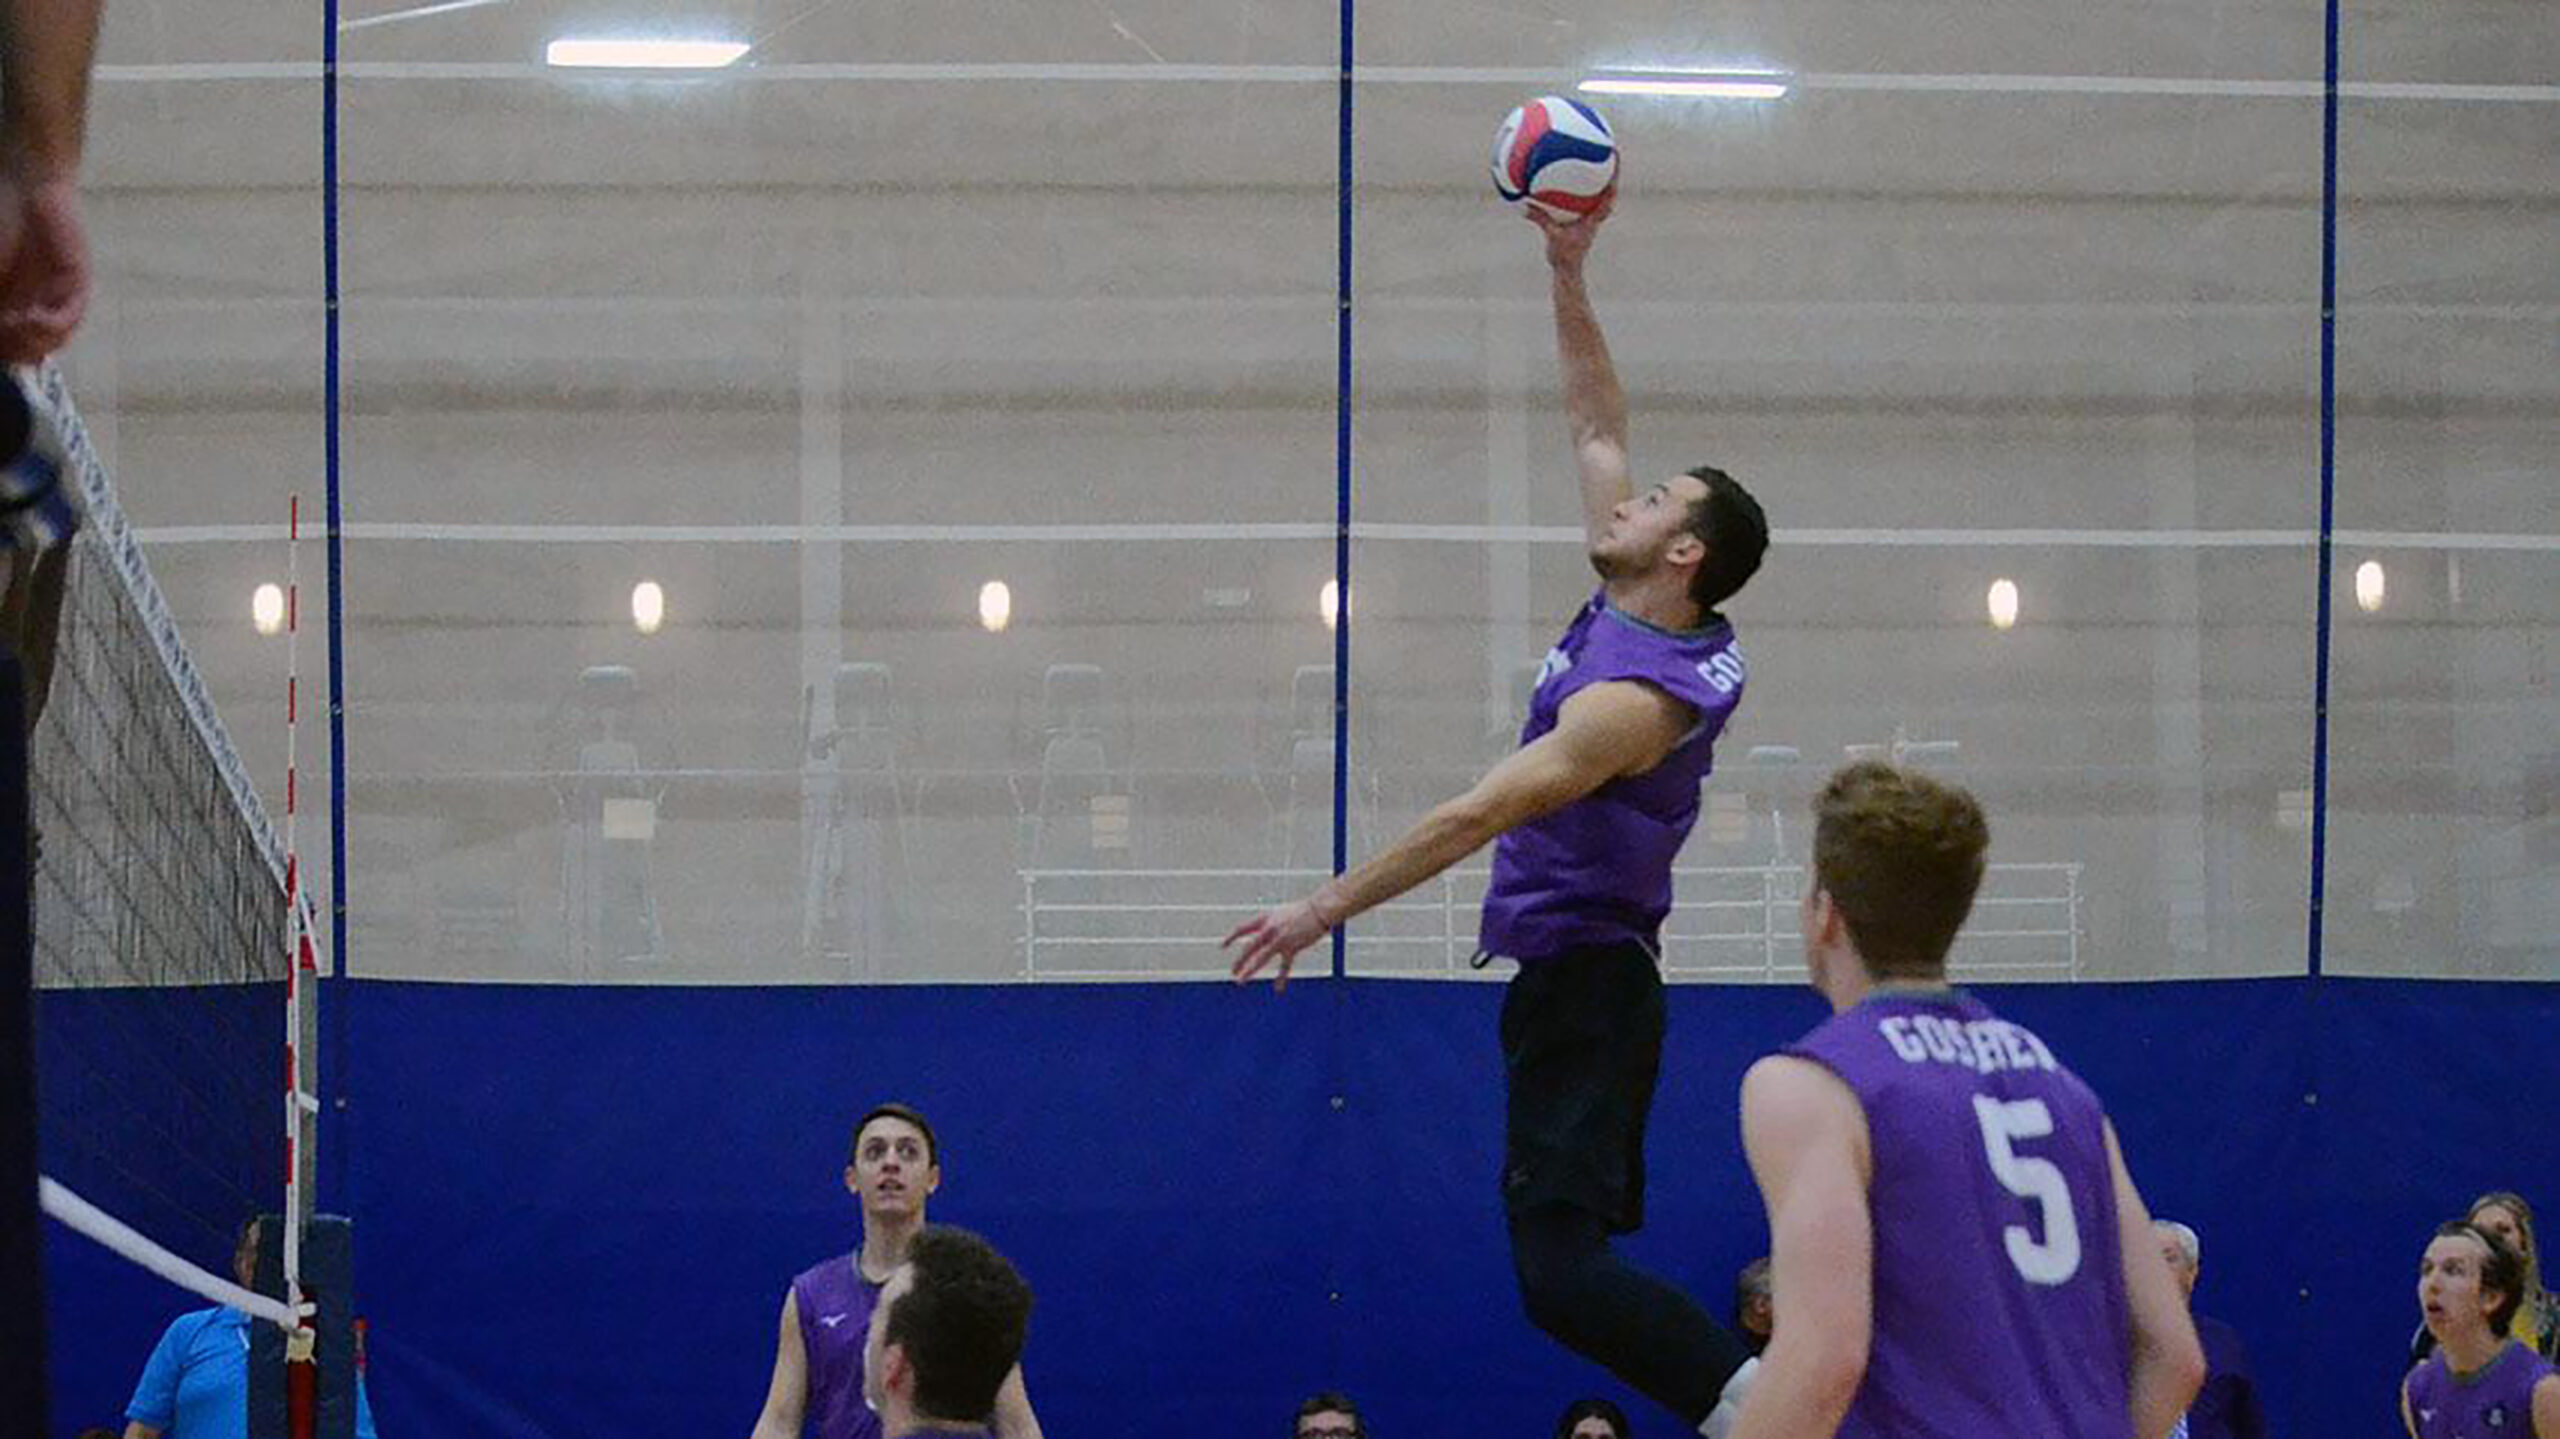 A player on the Goshen men's volleyball team jumps to hit the ball during a game